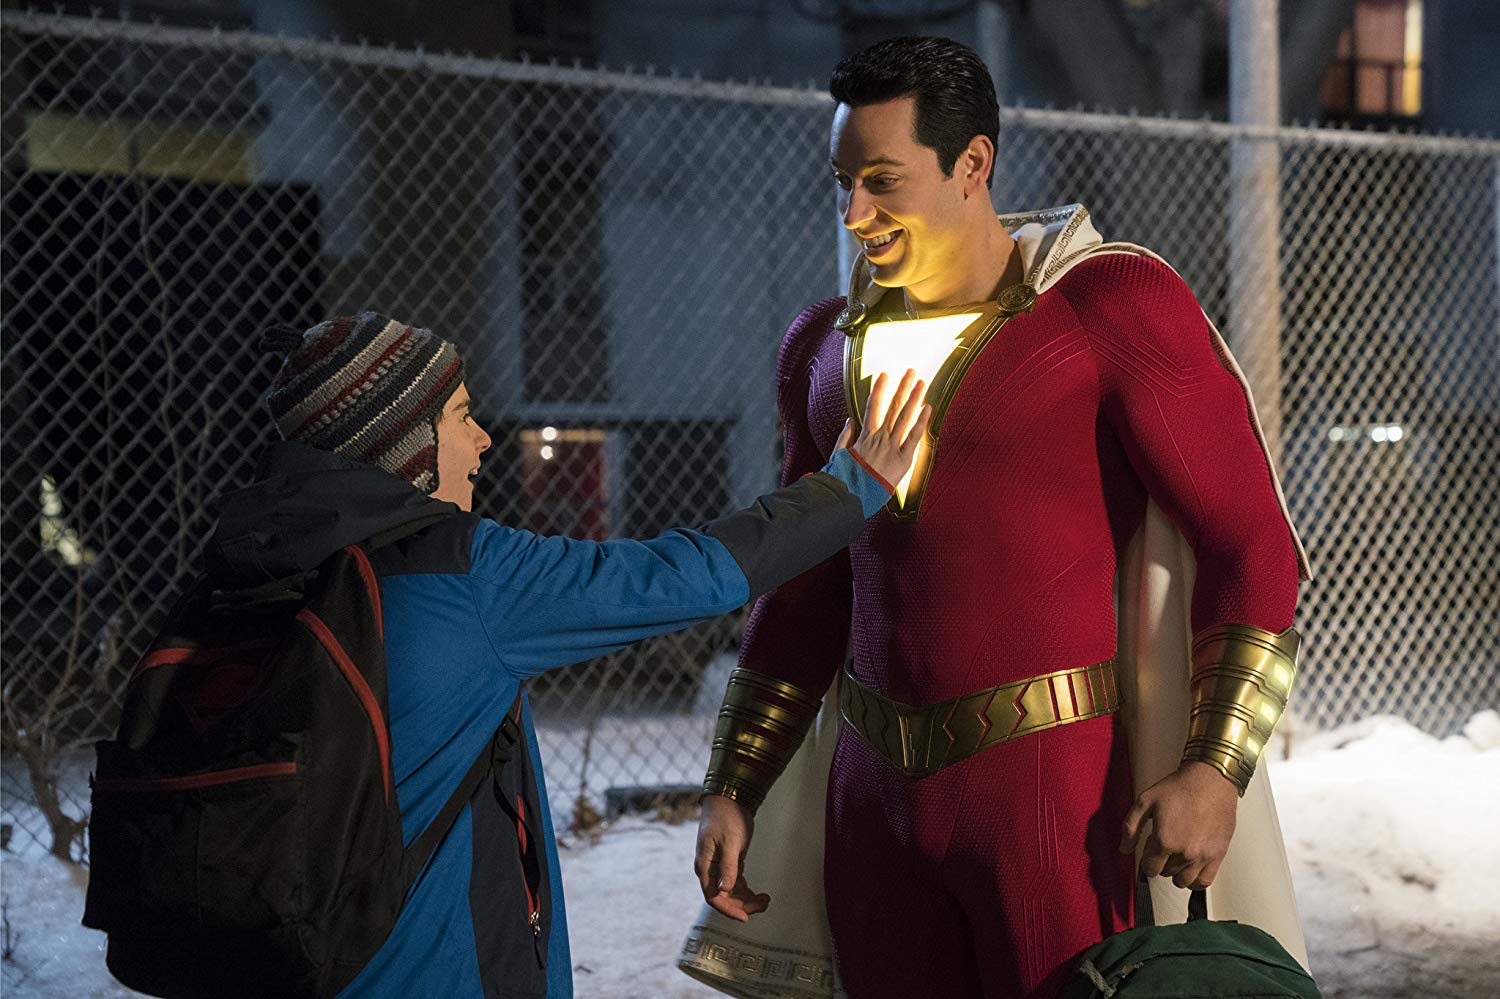 Zachary Levi feared he was 'too old' to play a superhero Shazam! Provider: Warner Bros. Source: https://www.imdb.com/title/tt0448115/